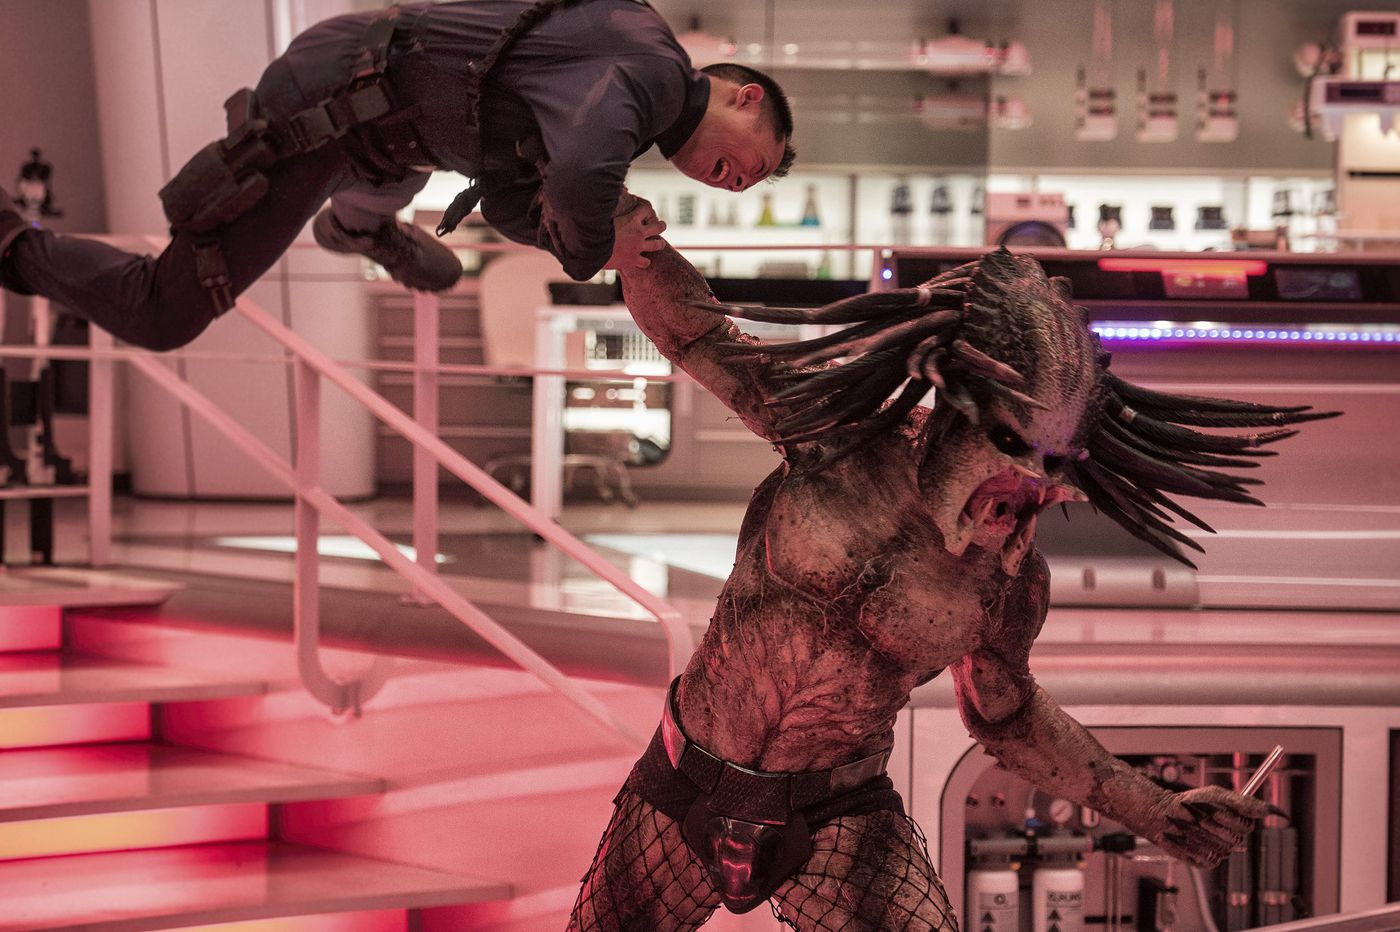 'The Predator' bites off more than it can chew